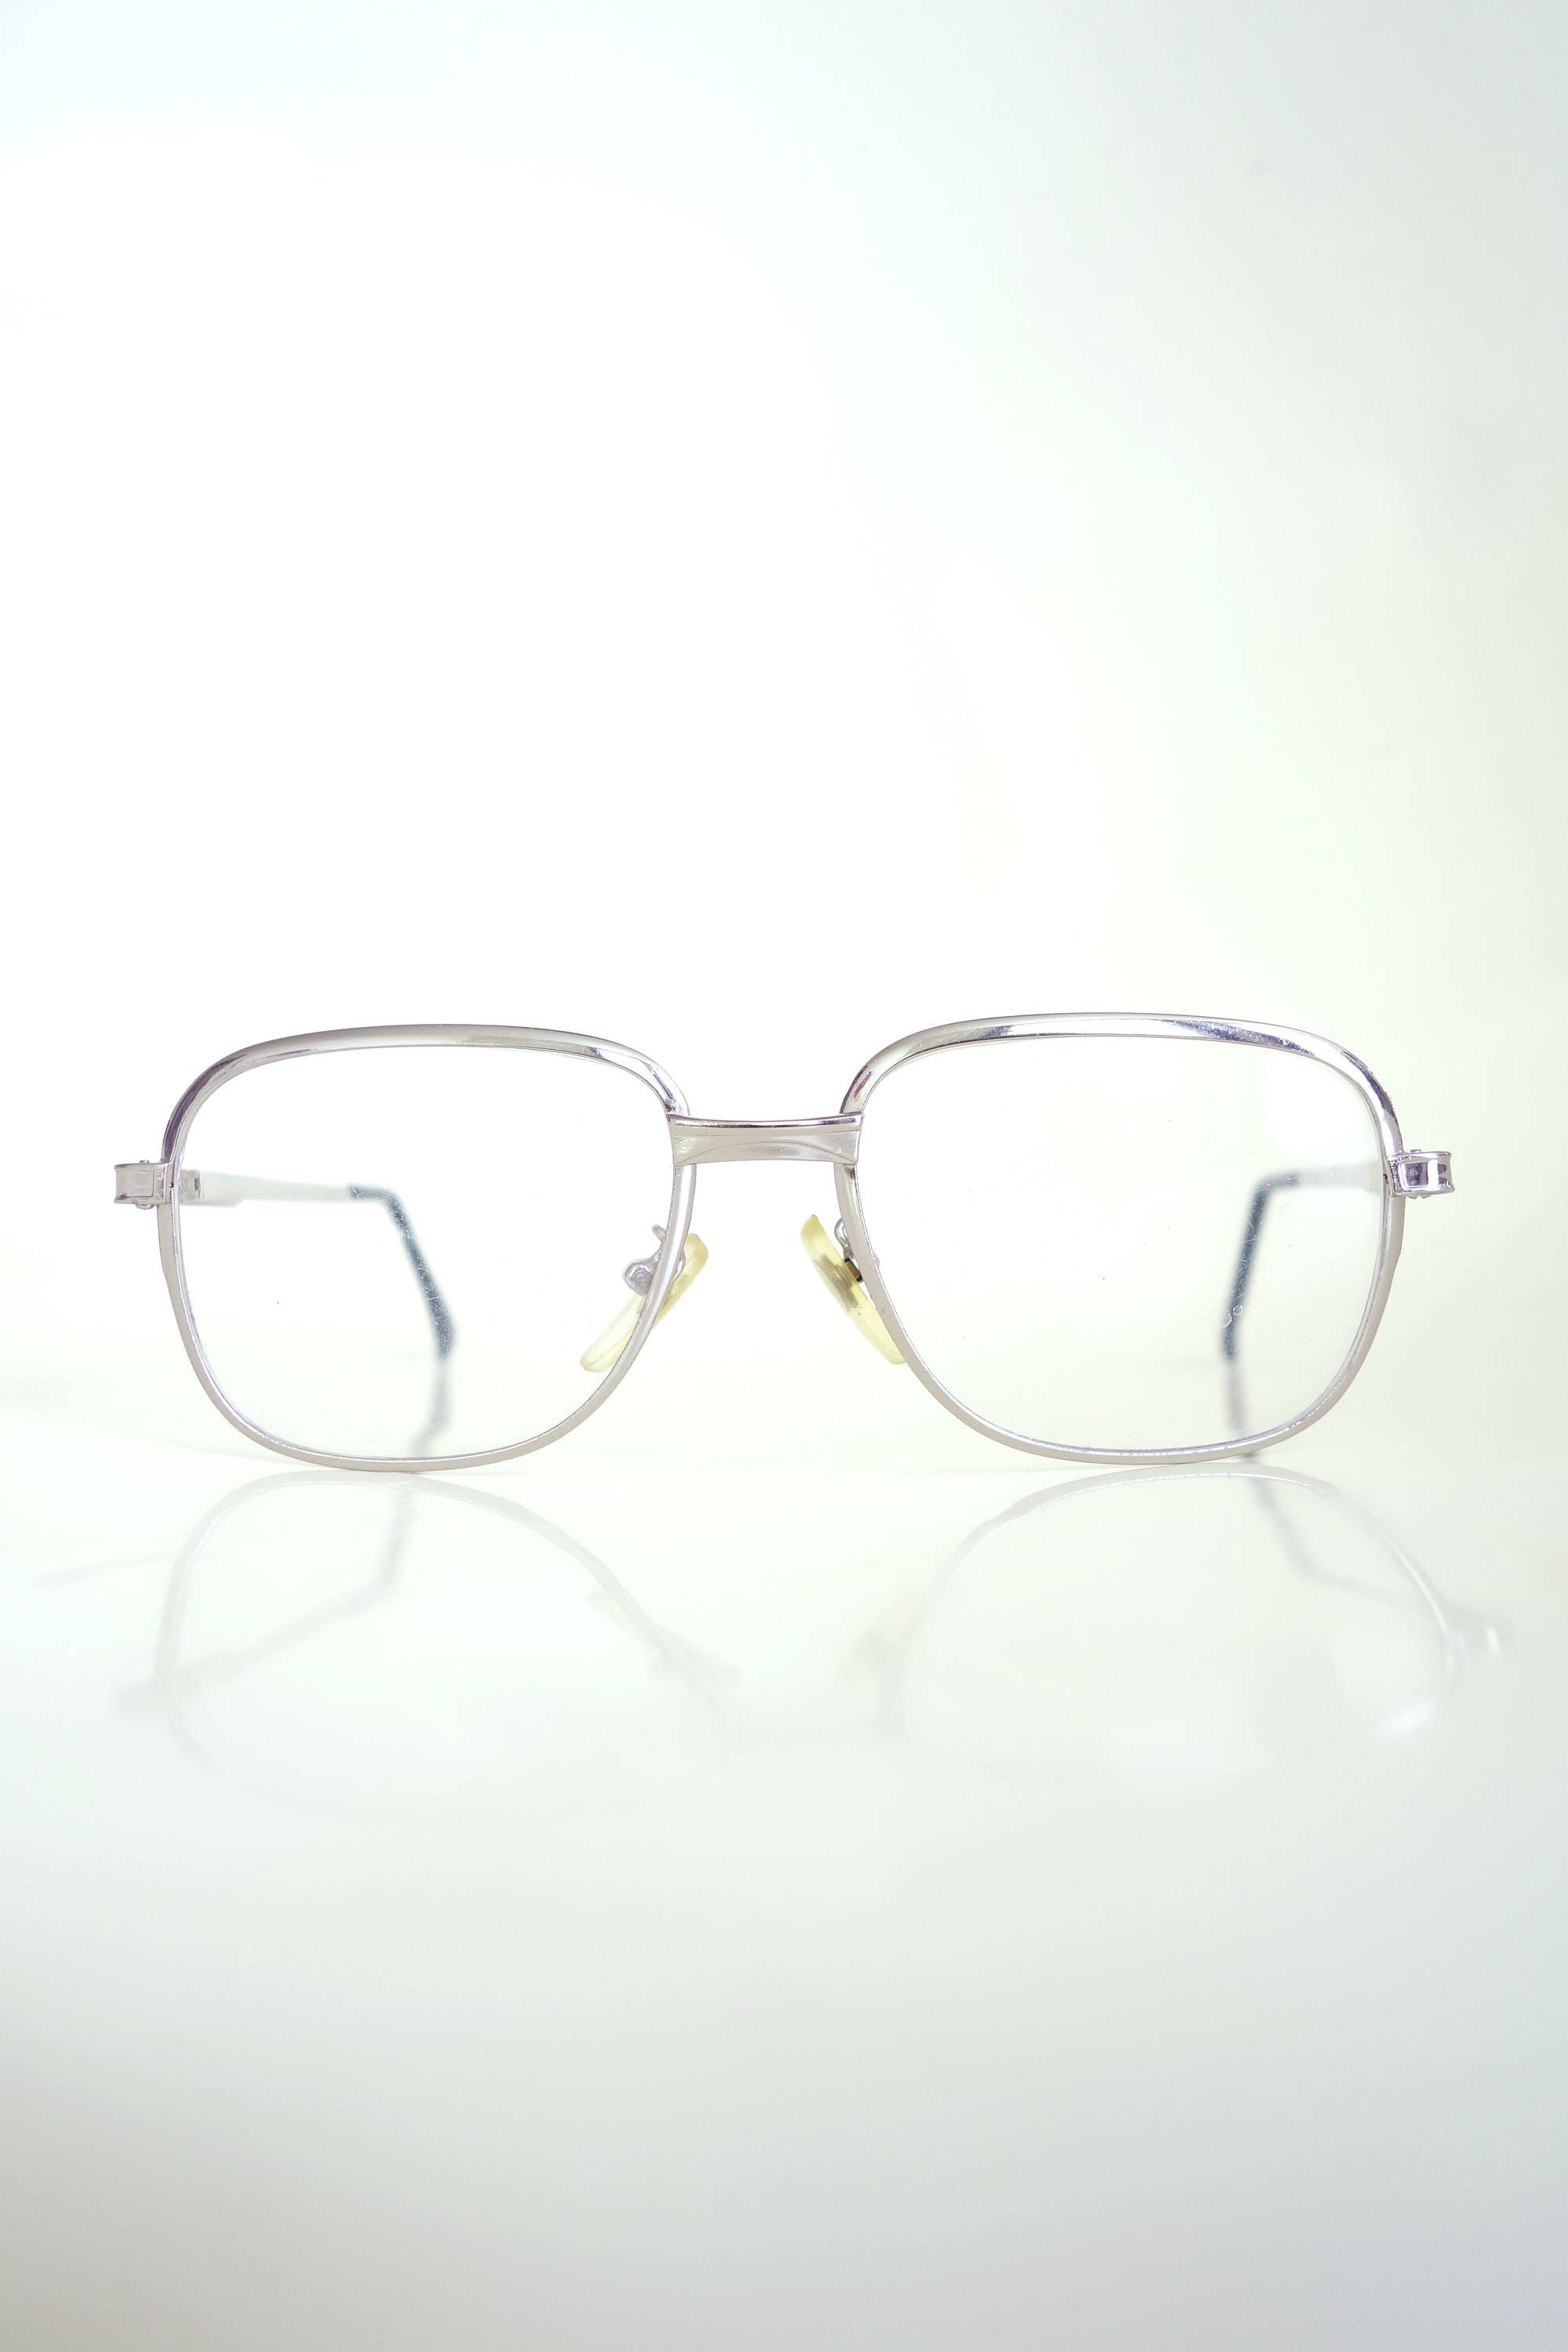 95a872cd922 1970s Mad Men Boxy Eyeglasses Mens Glasses 70s Metallic Silver Boxy Geek  Chic Nerdy Hipster Indie